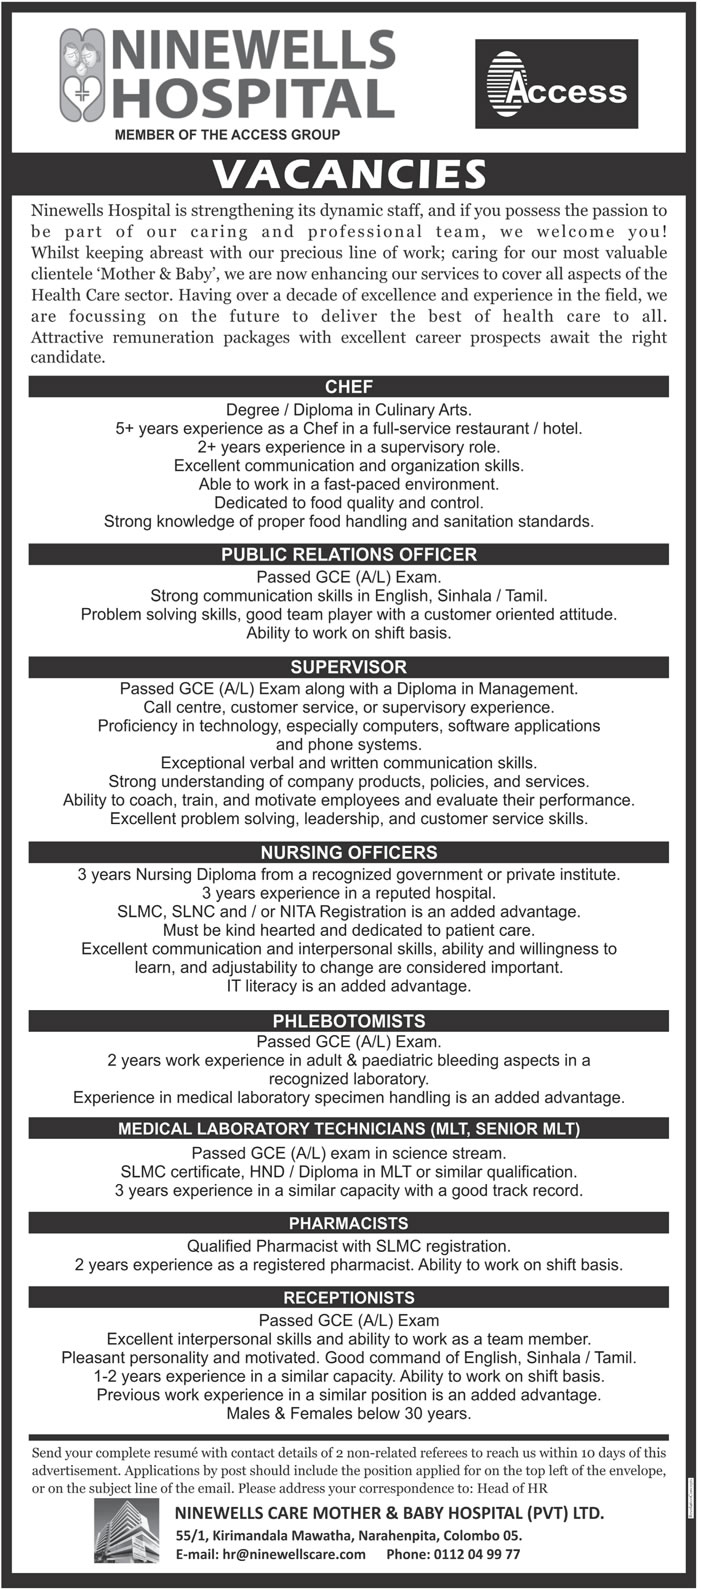 Vacancies for Receptionists, Pharmacists, Medical Laboratory